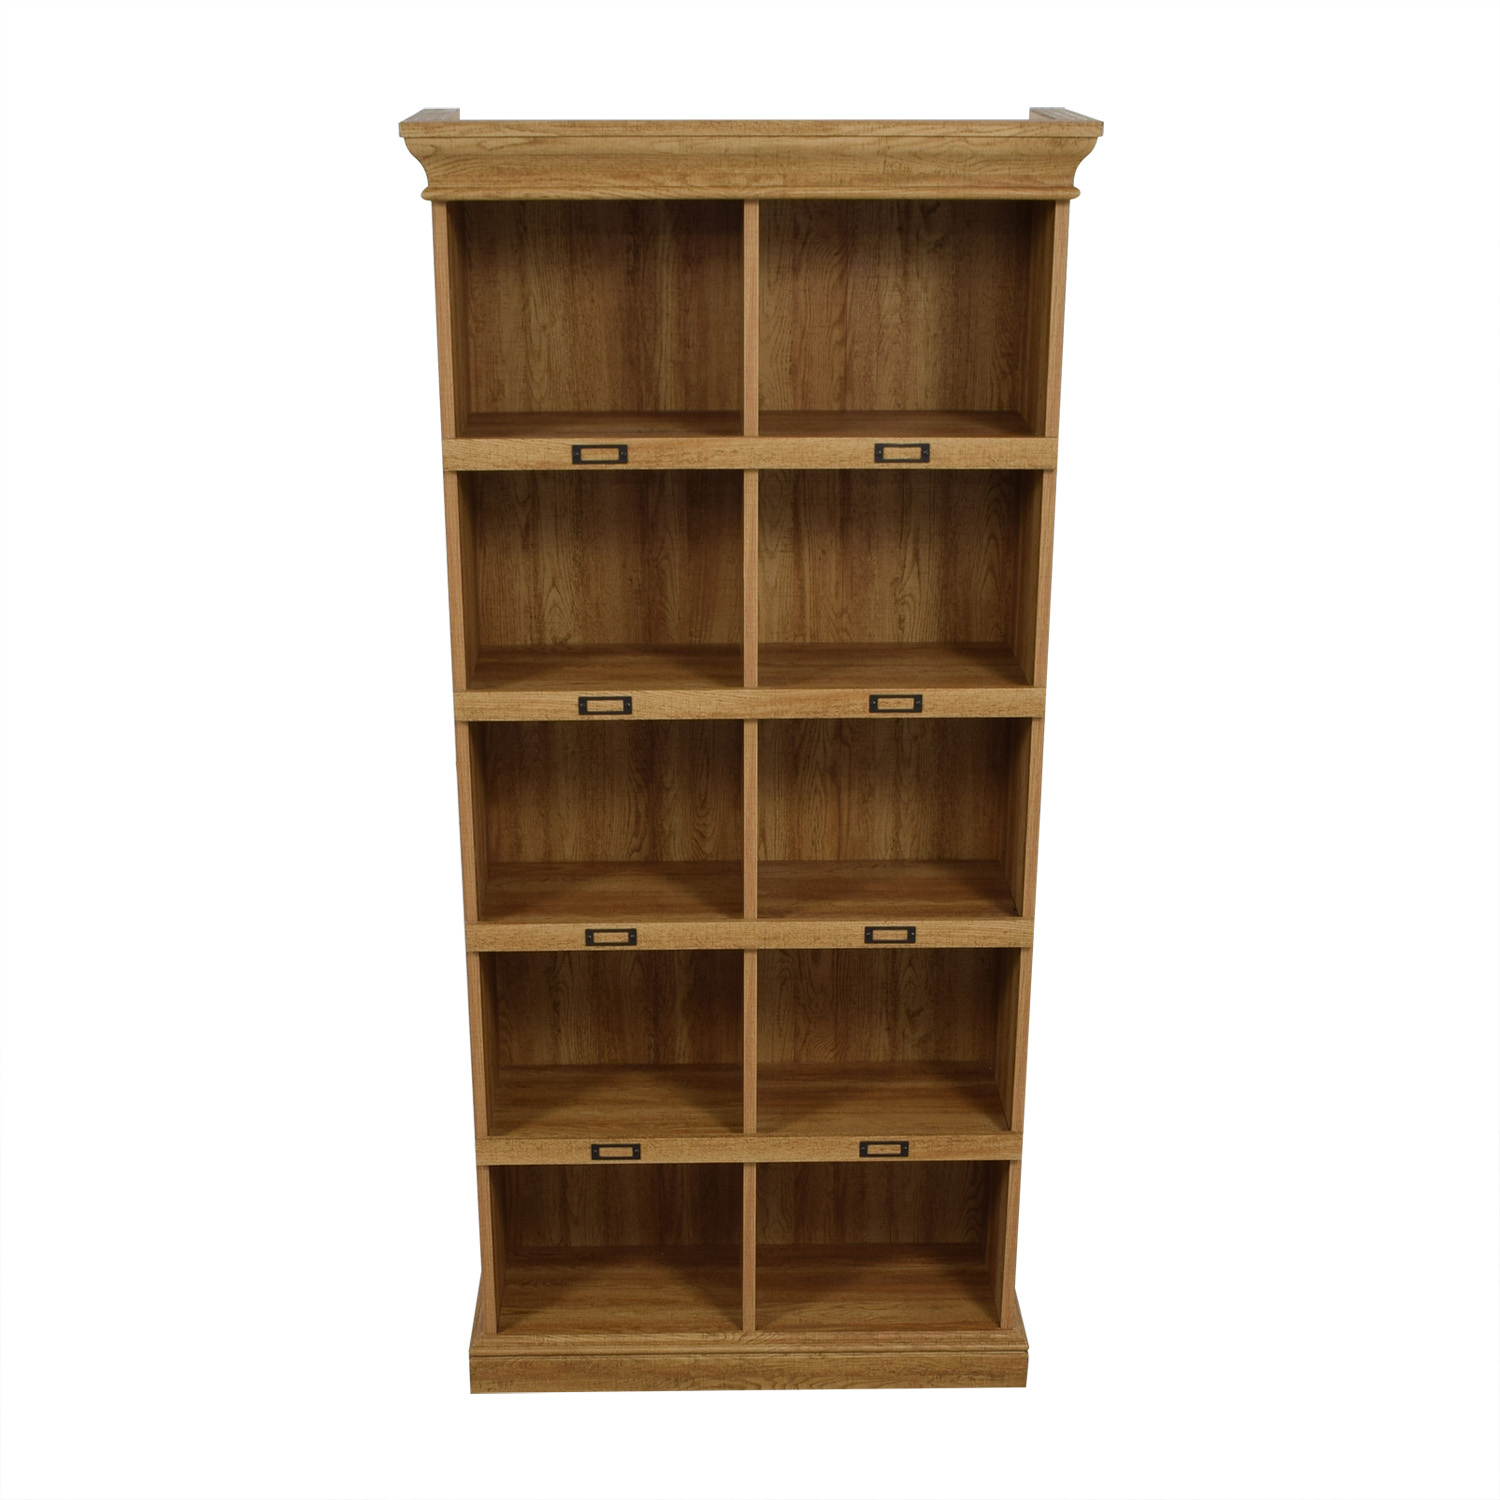 shop Beachcrest Home Bowerbank Standard Bookcase Beachcrest Home Bookcases & Shelving